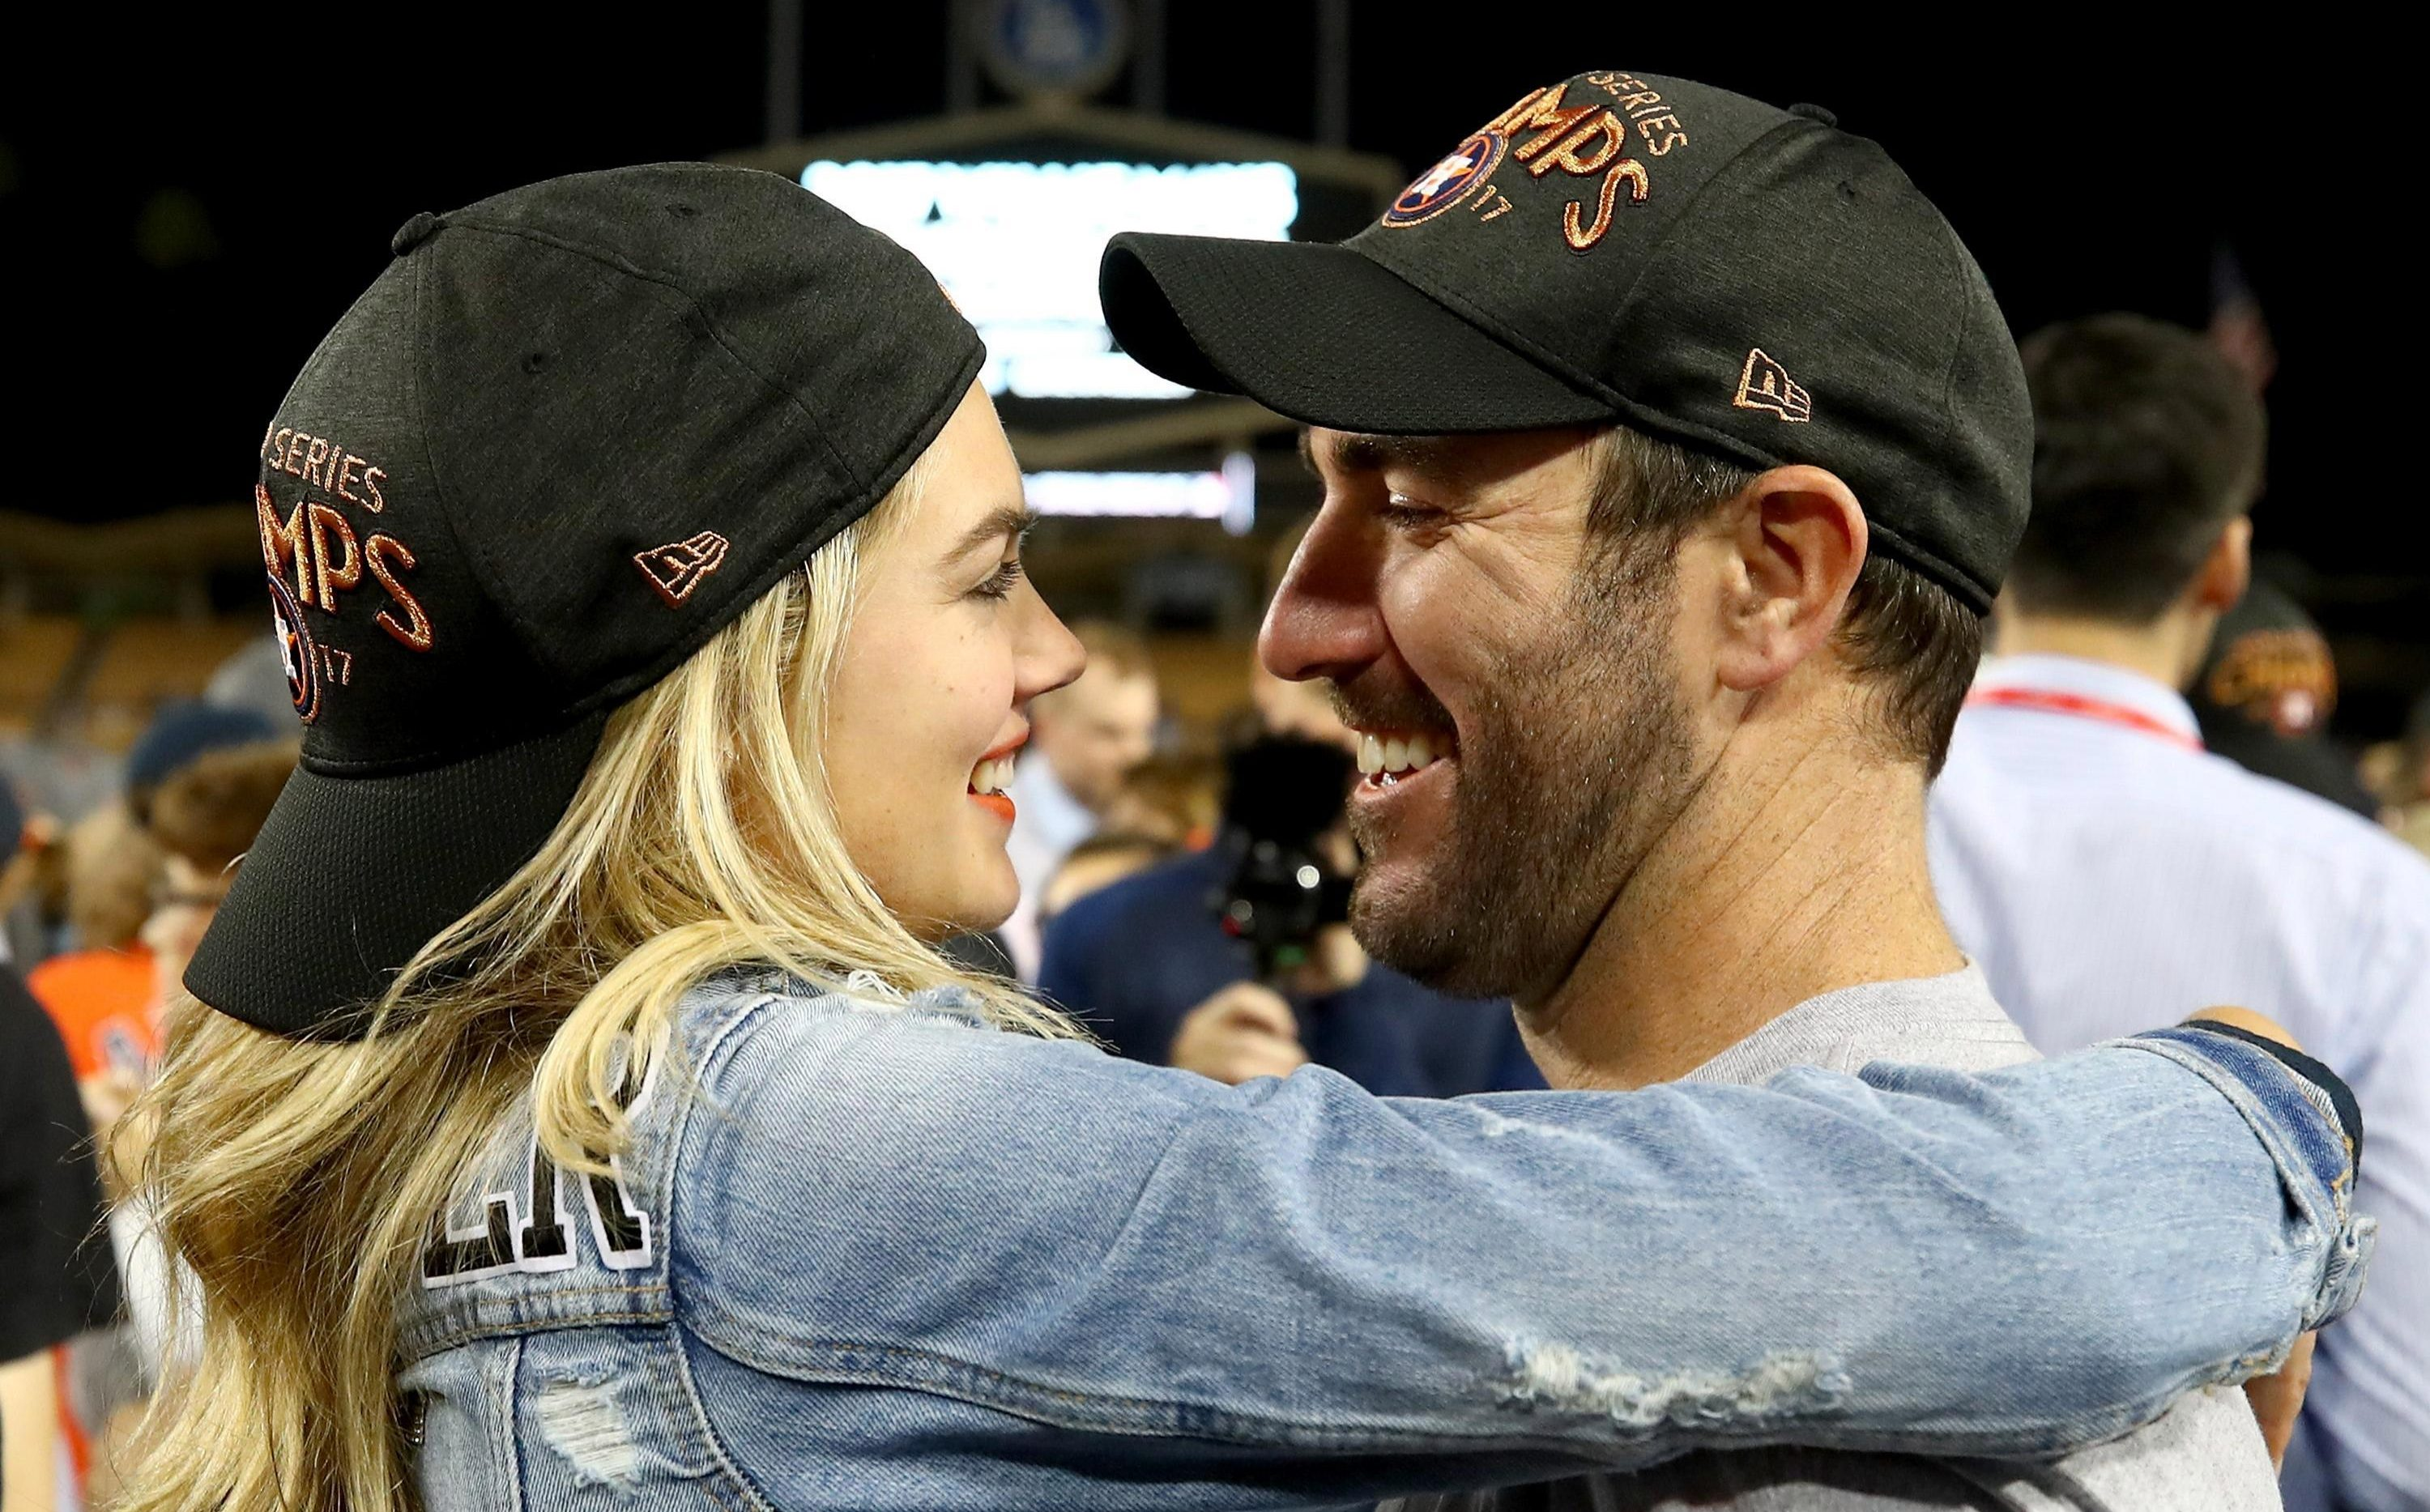 Justin Verlander helped Houston beat the LA Dodgers in the World Series last year